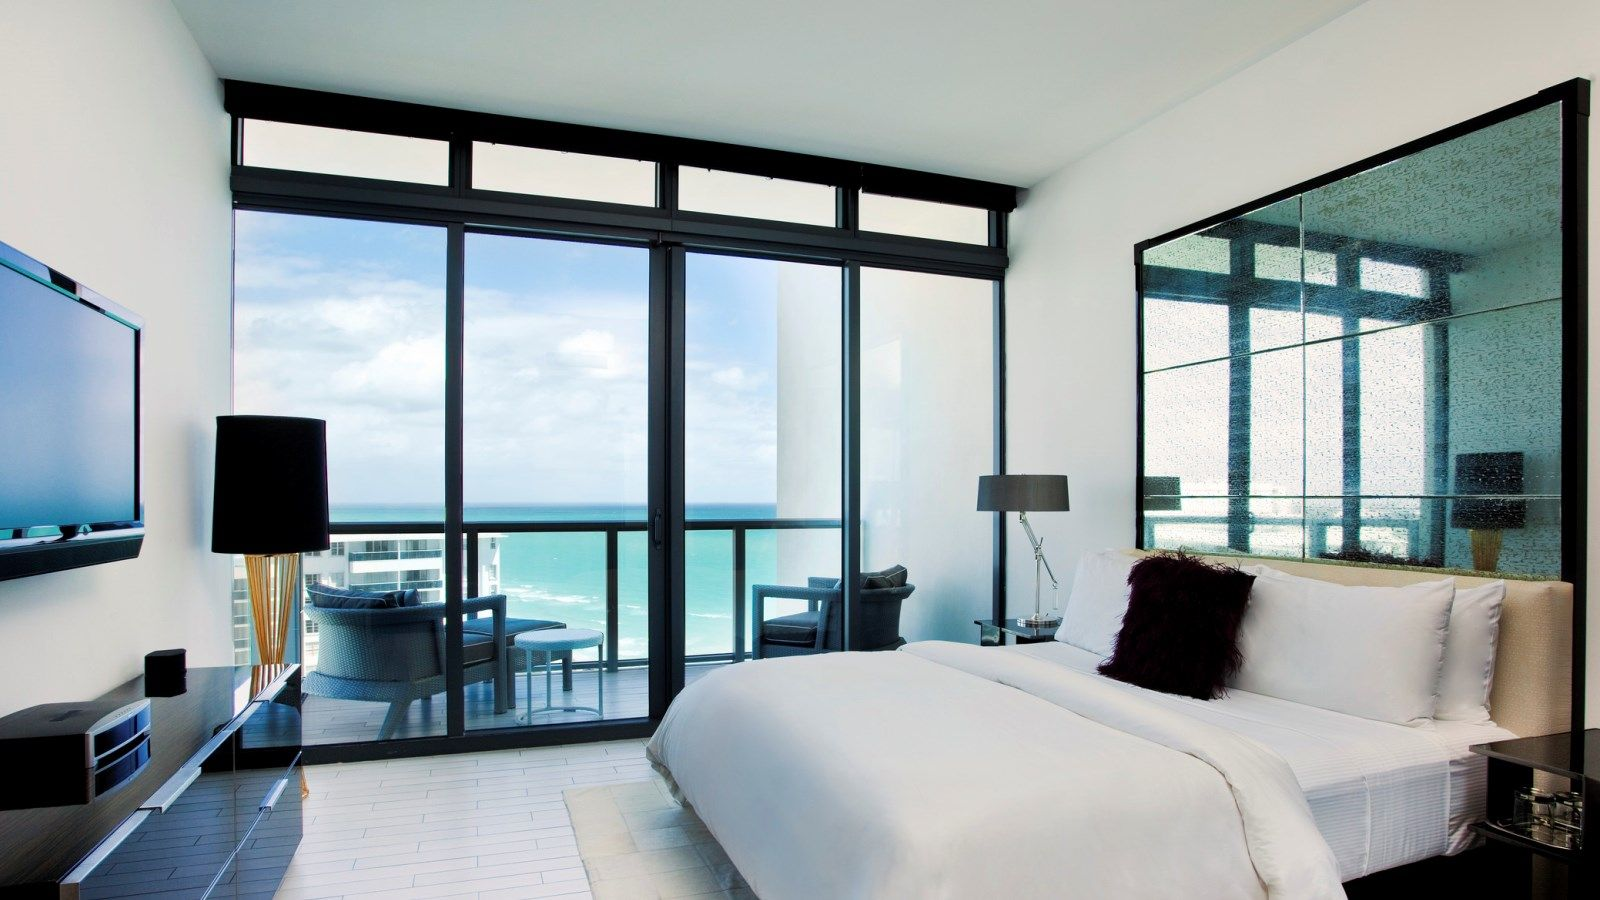 Miami oceanfront hotels w south beach - 2 bedroom hotel suites in miami south beach ...